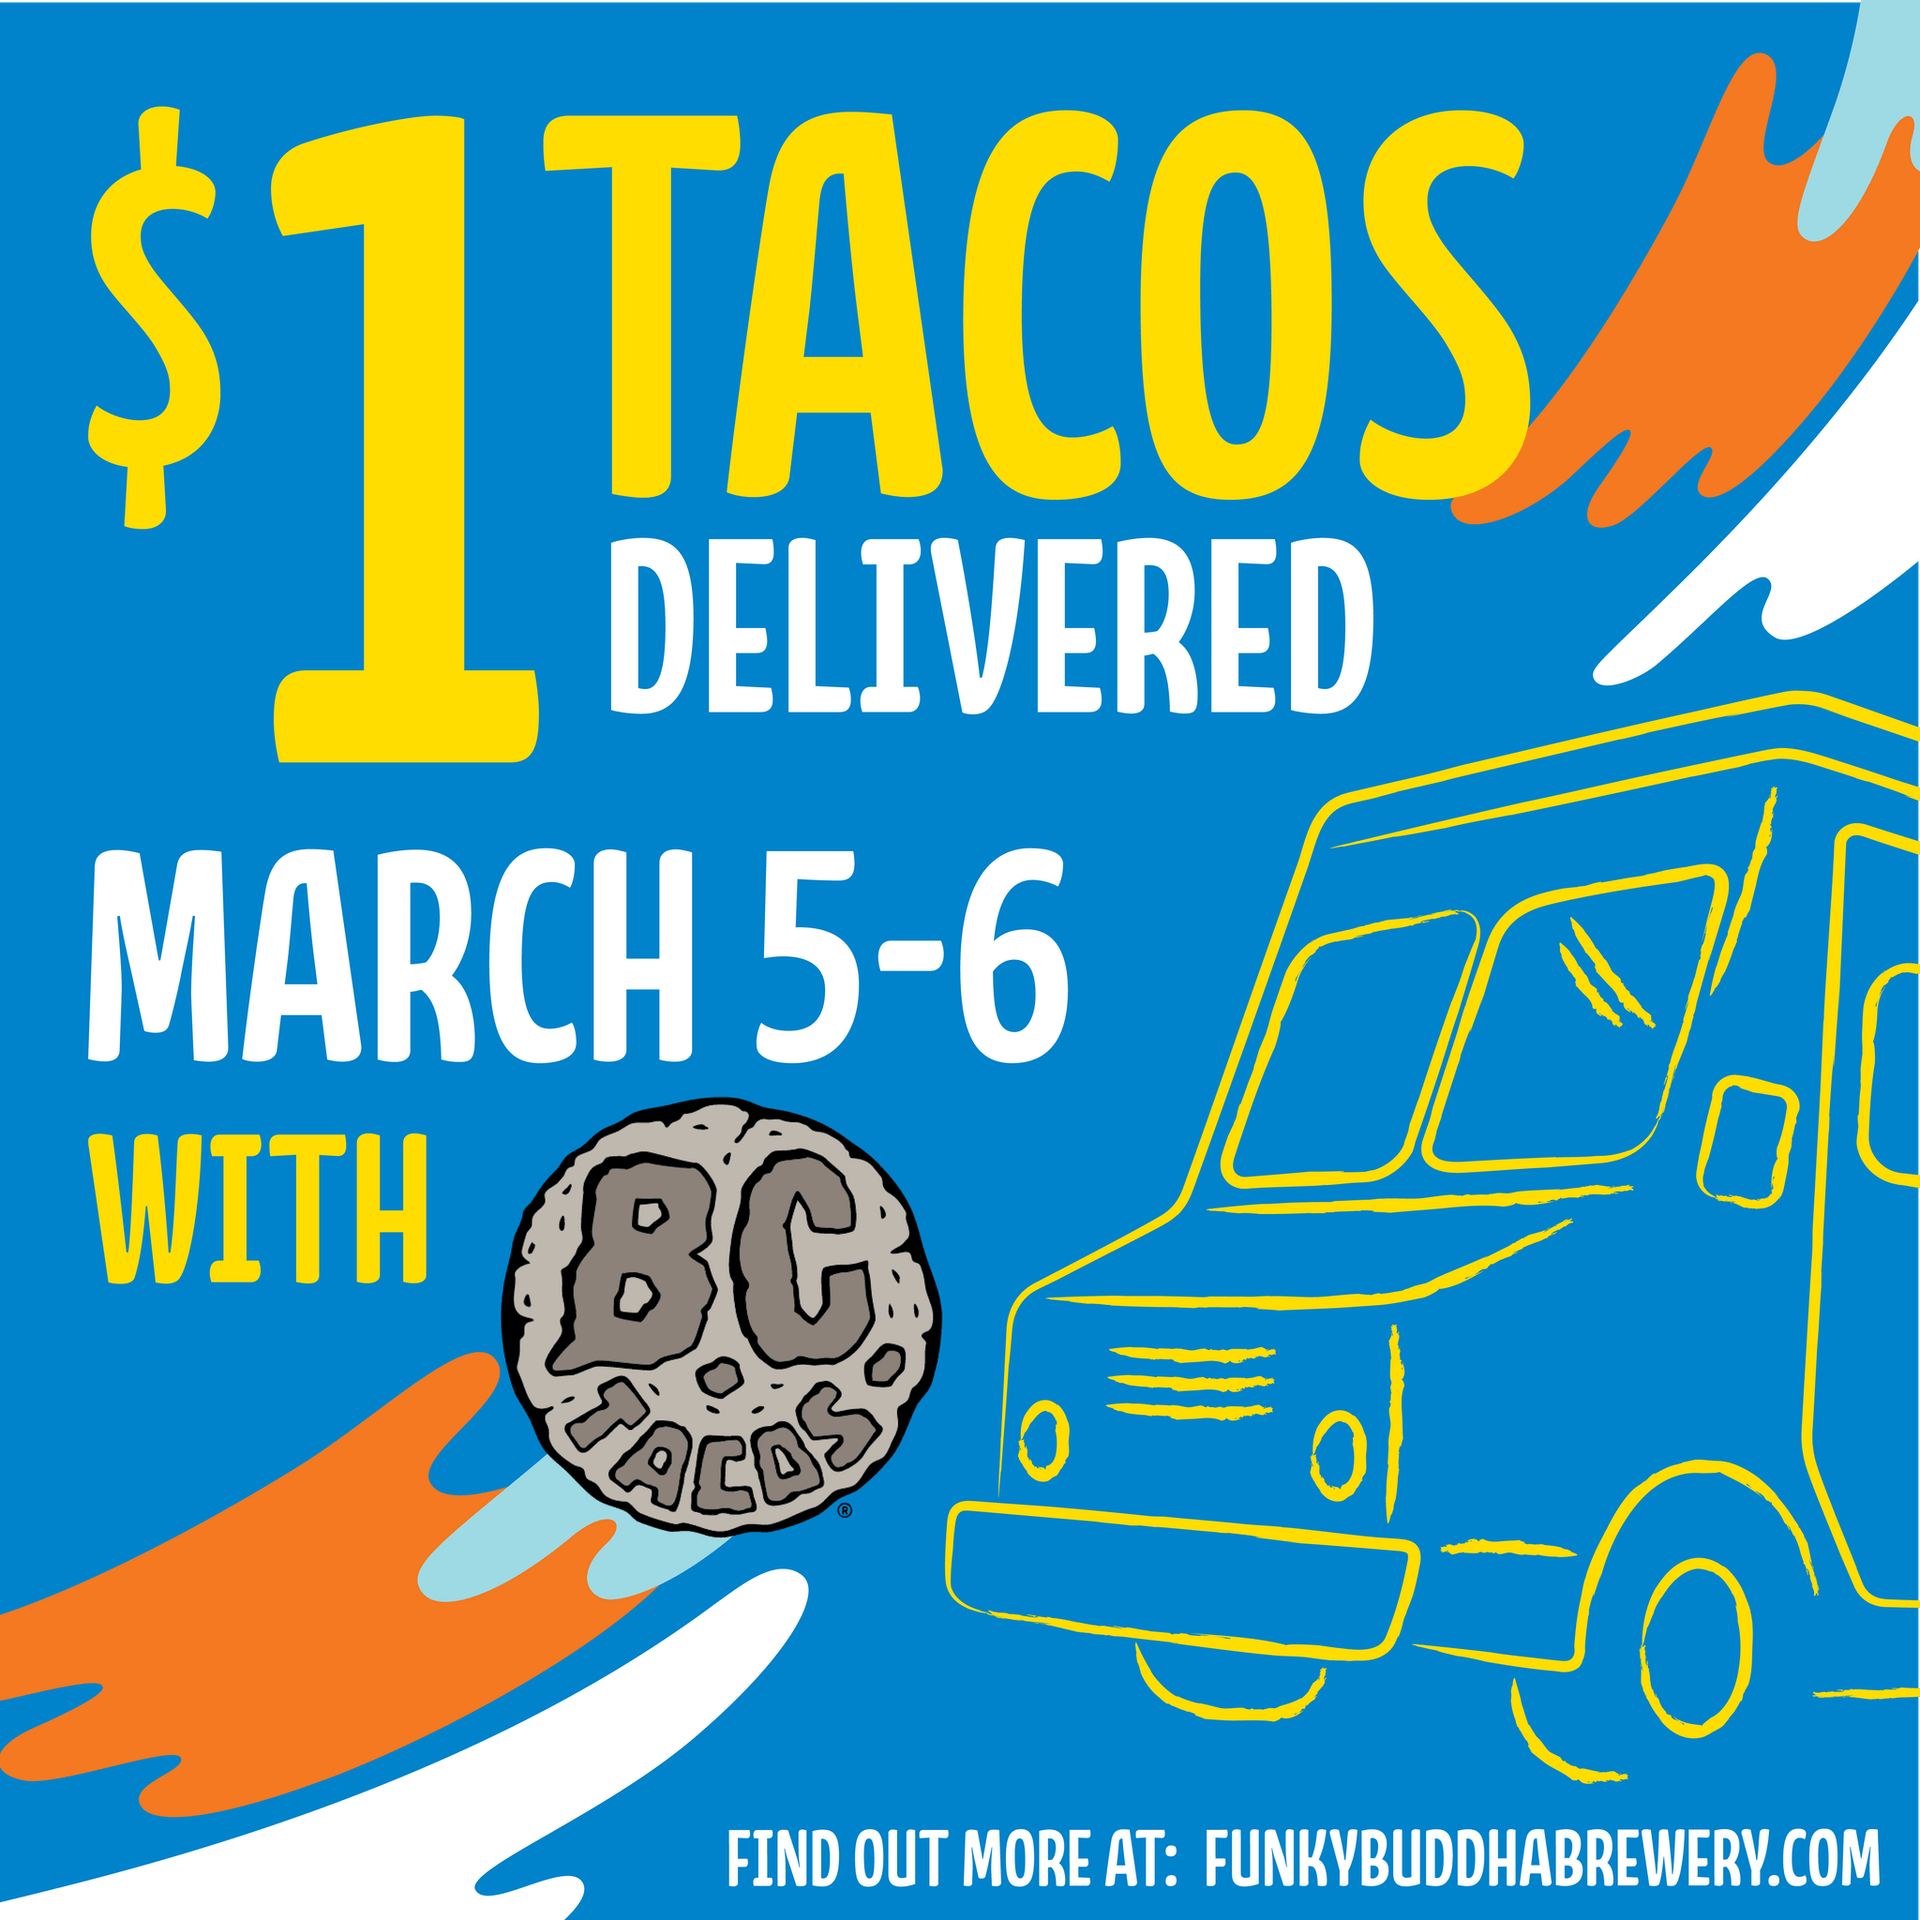 1$ tacos delivered March 5th-6th